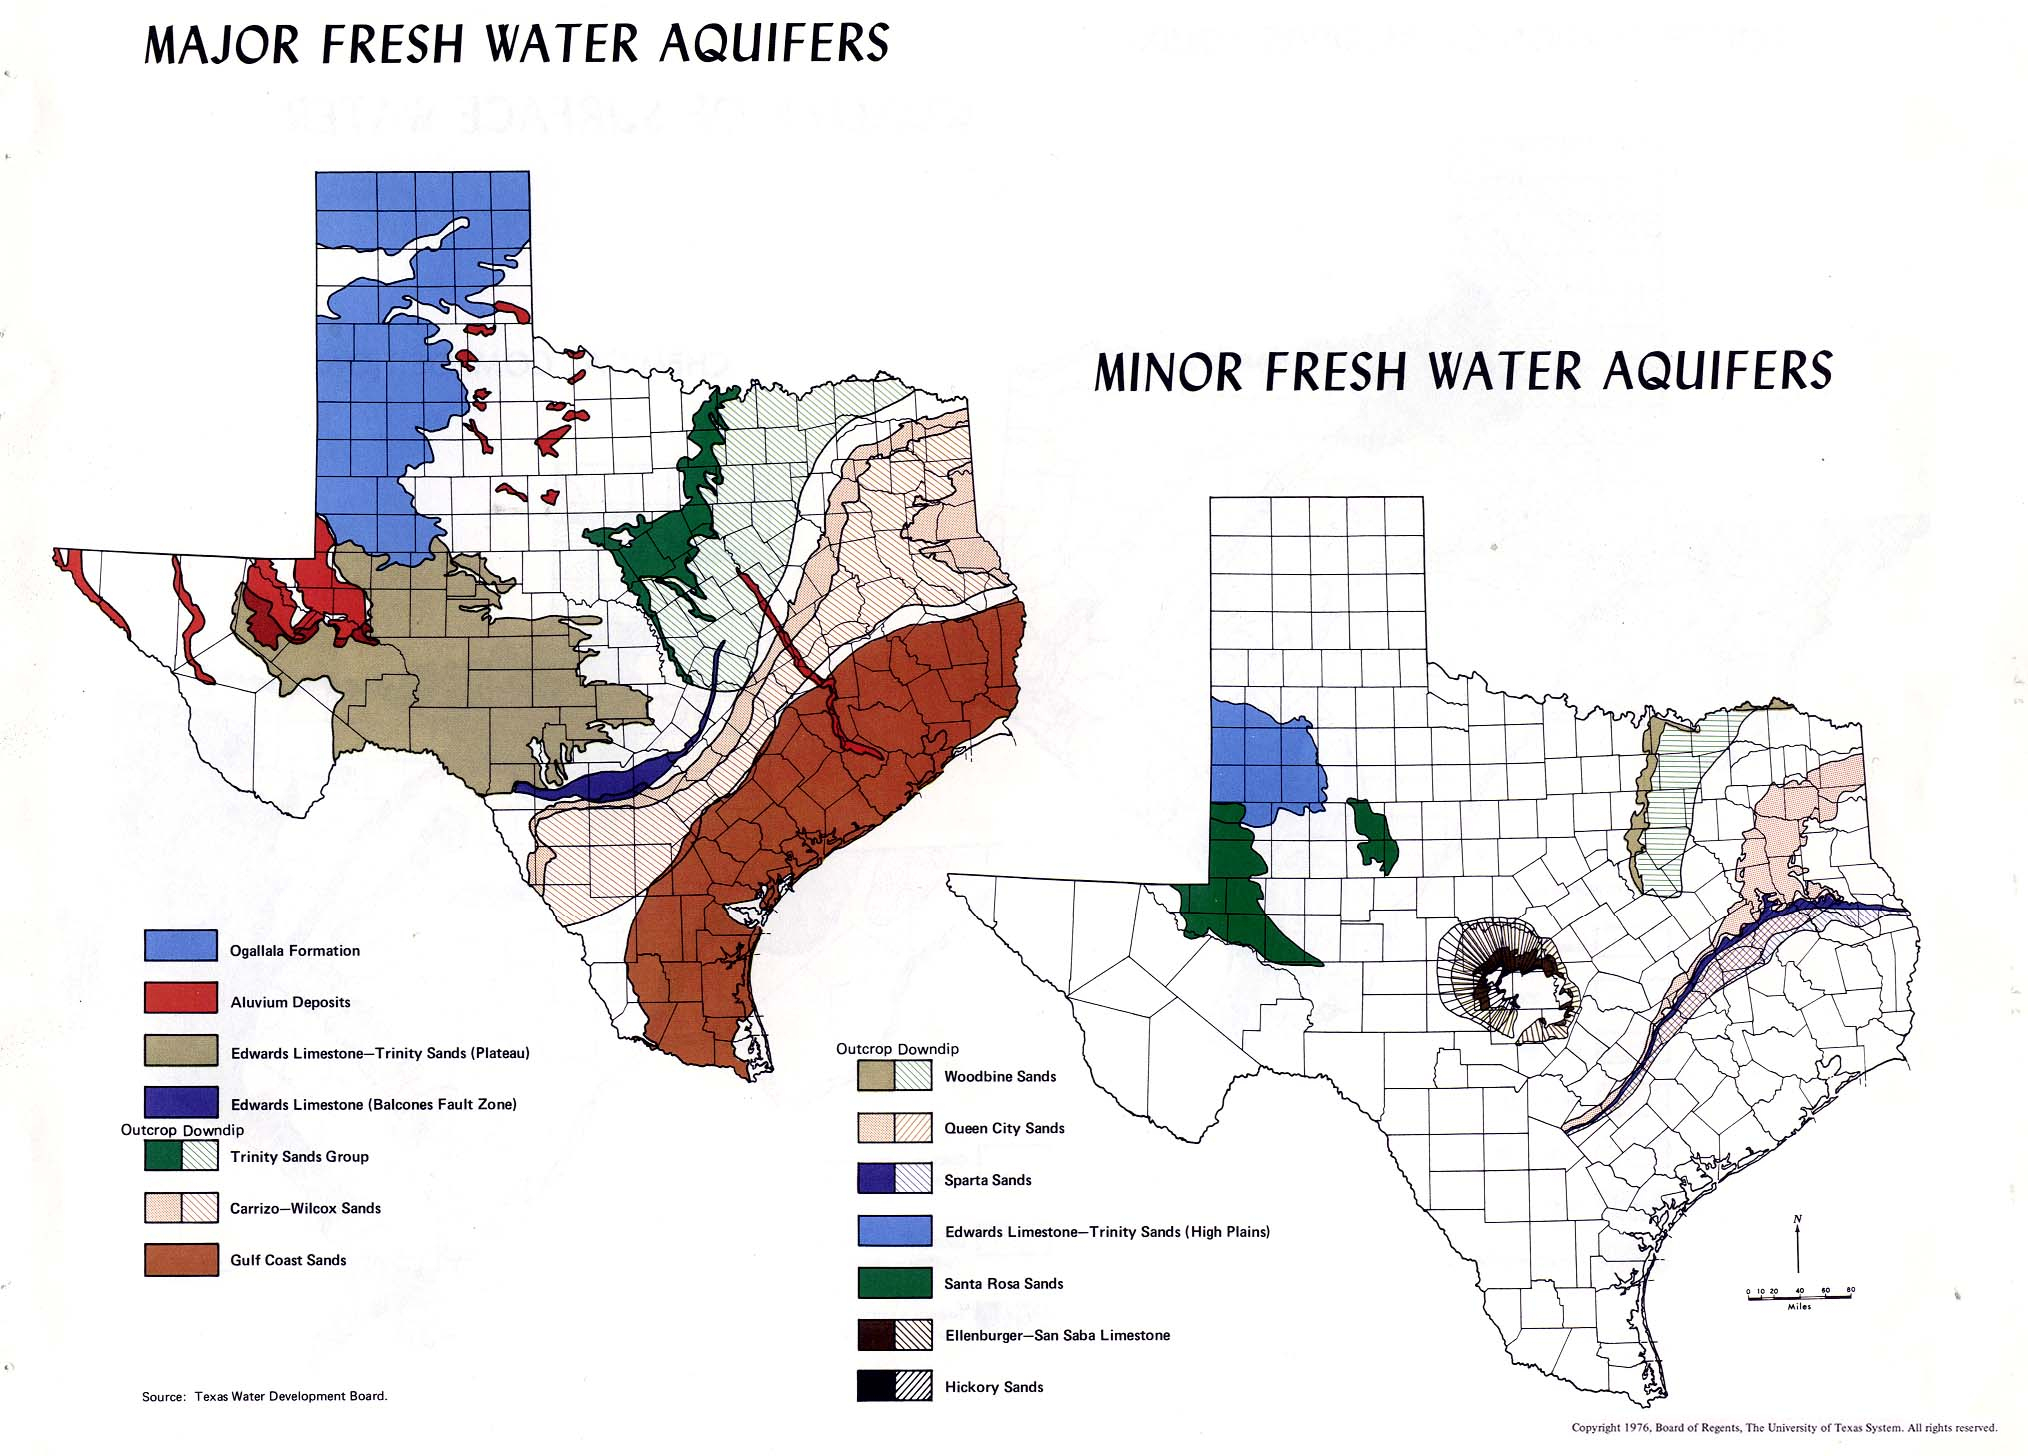 Atlas Of Texas - Perry-Castañeda Map Collection - Ut Library Online - Texas Water Well Location Map